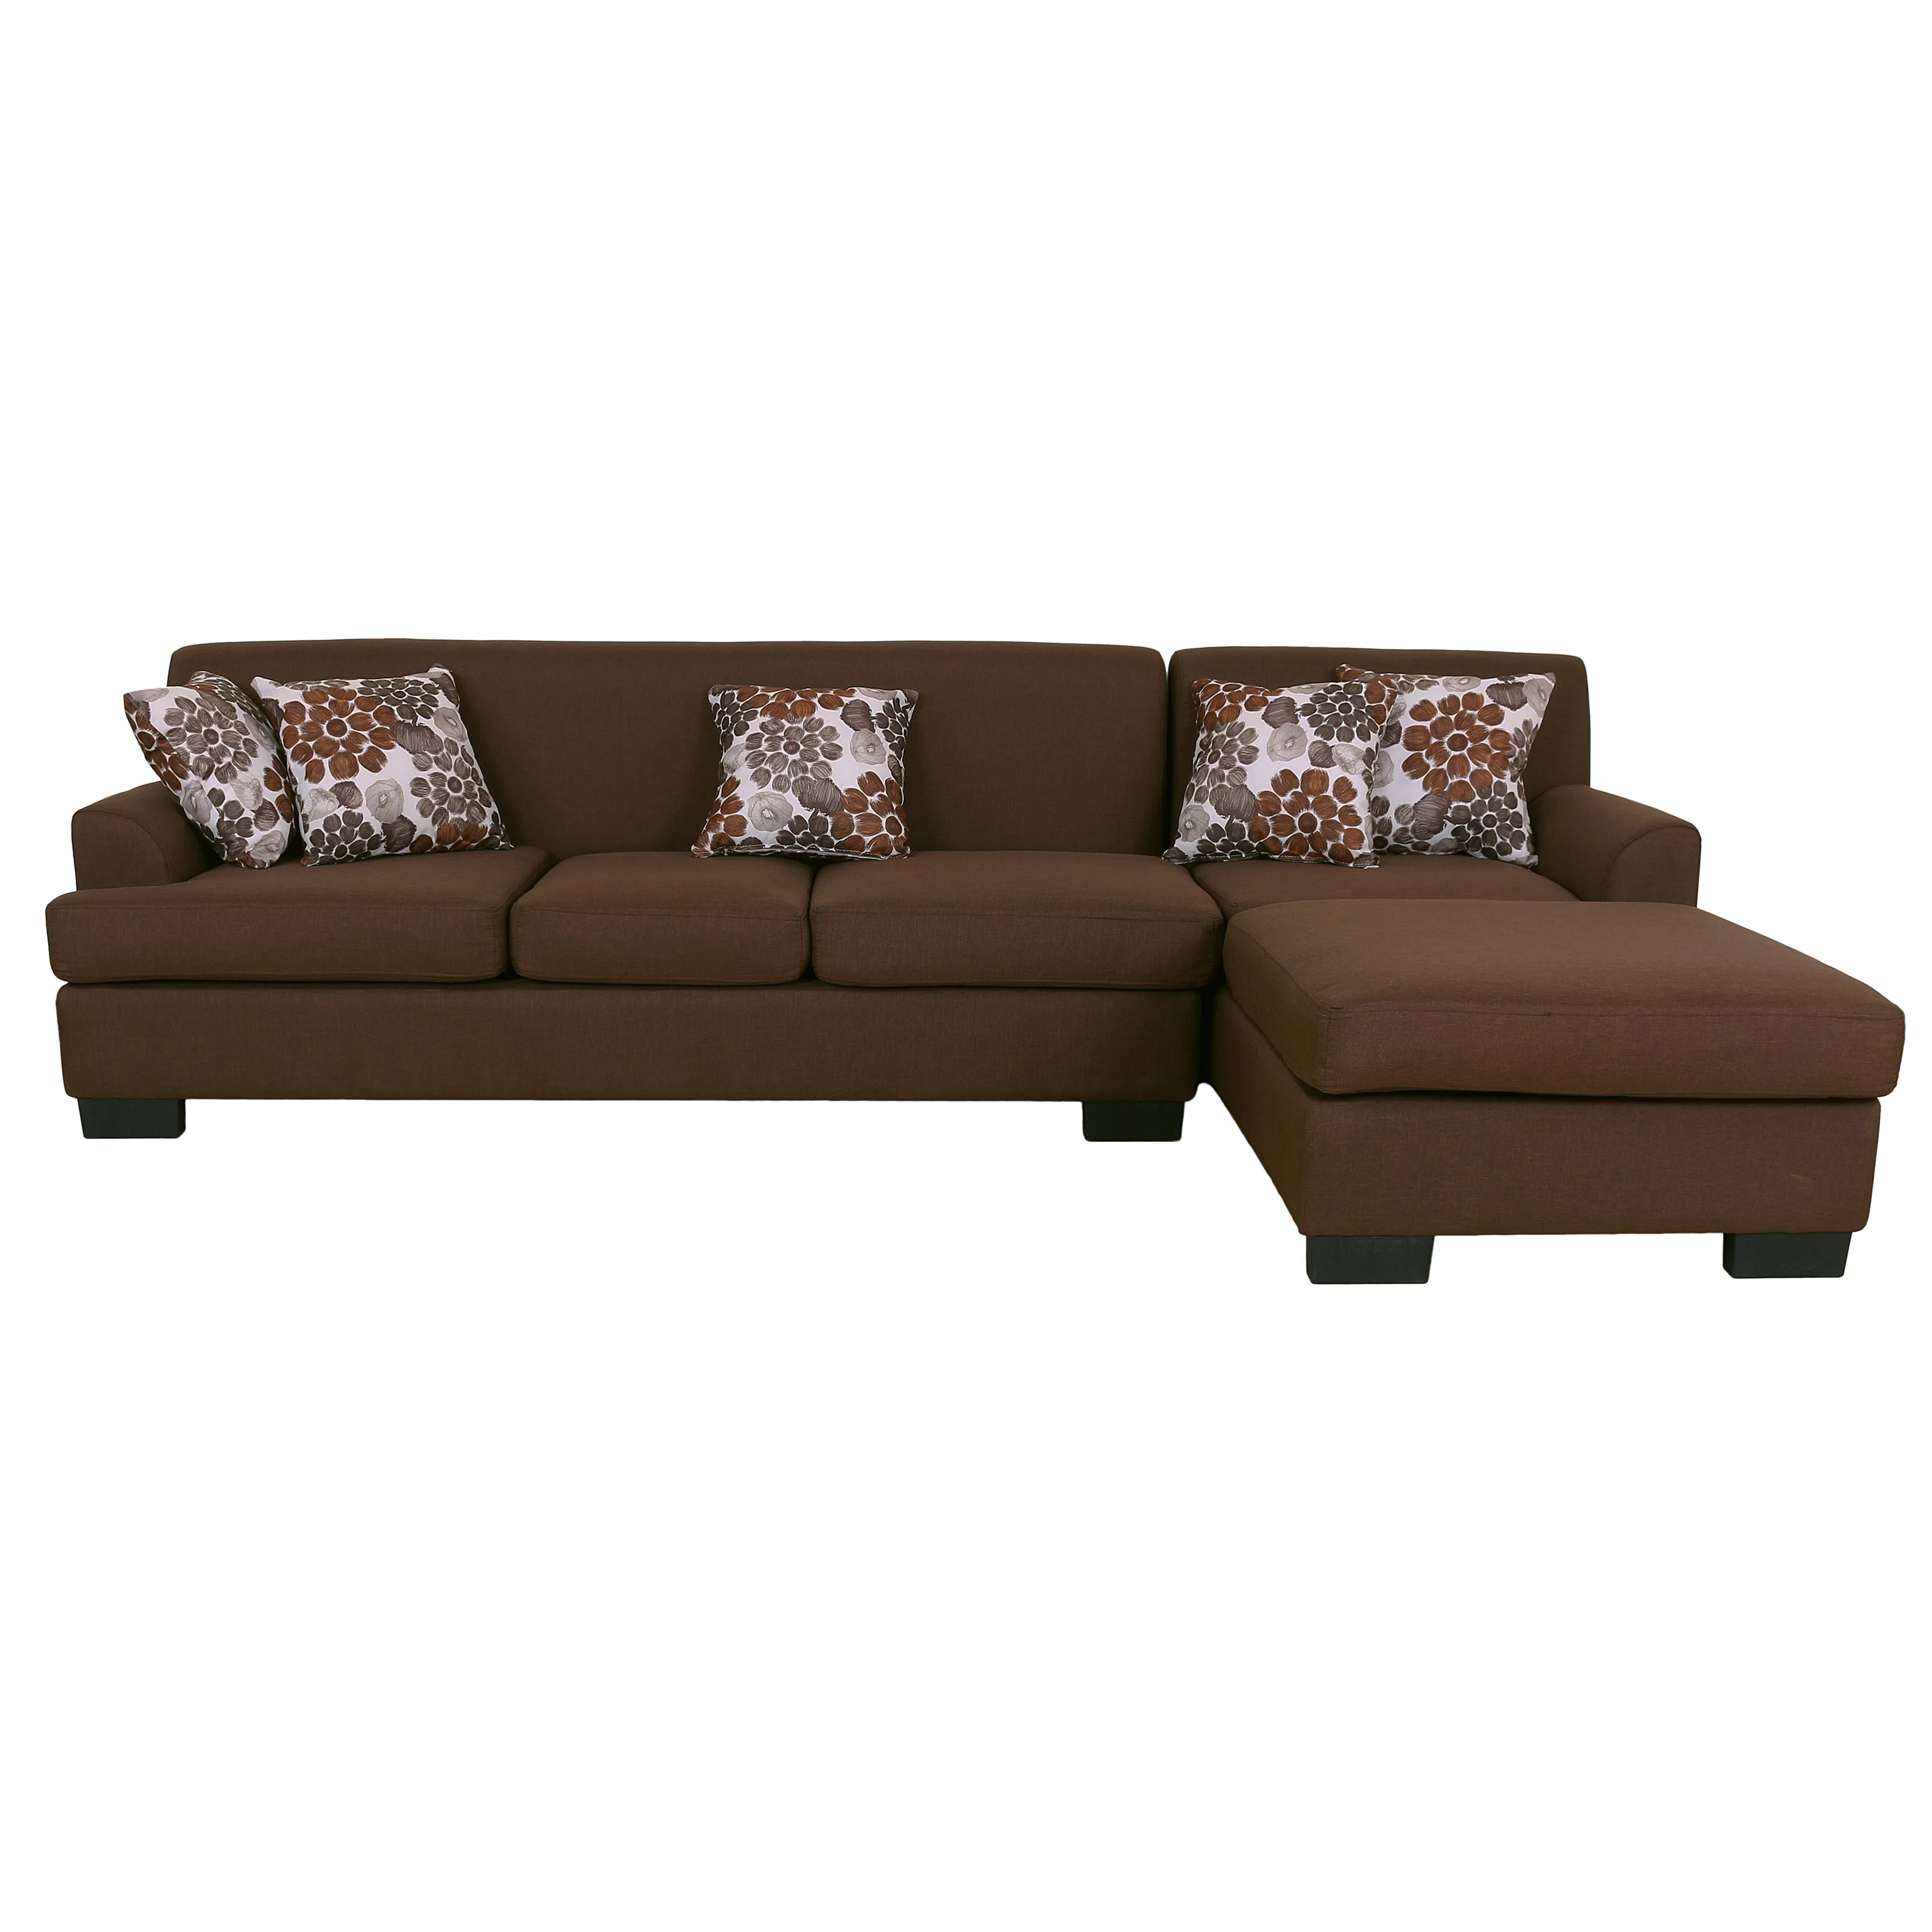 aria fabric modern sectional sofa set clack bed reviews container reversible chaise and wayfair